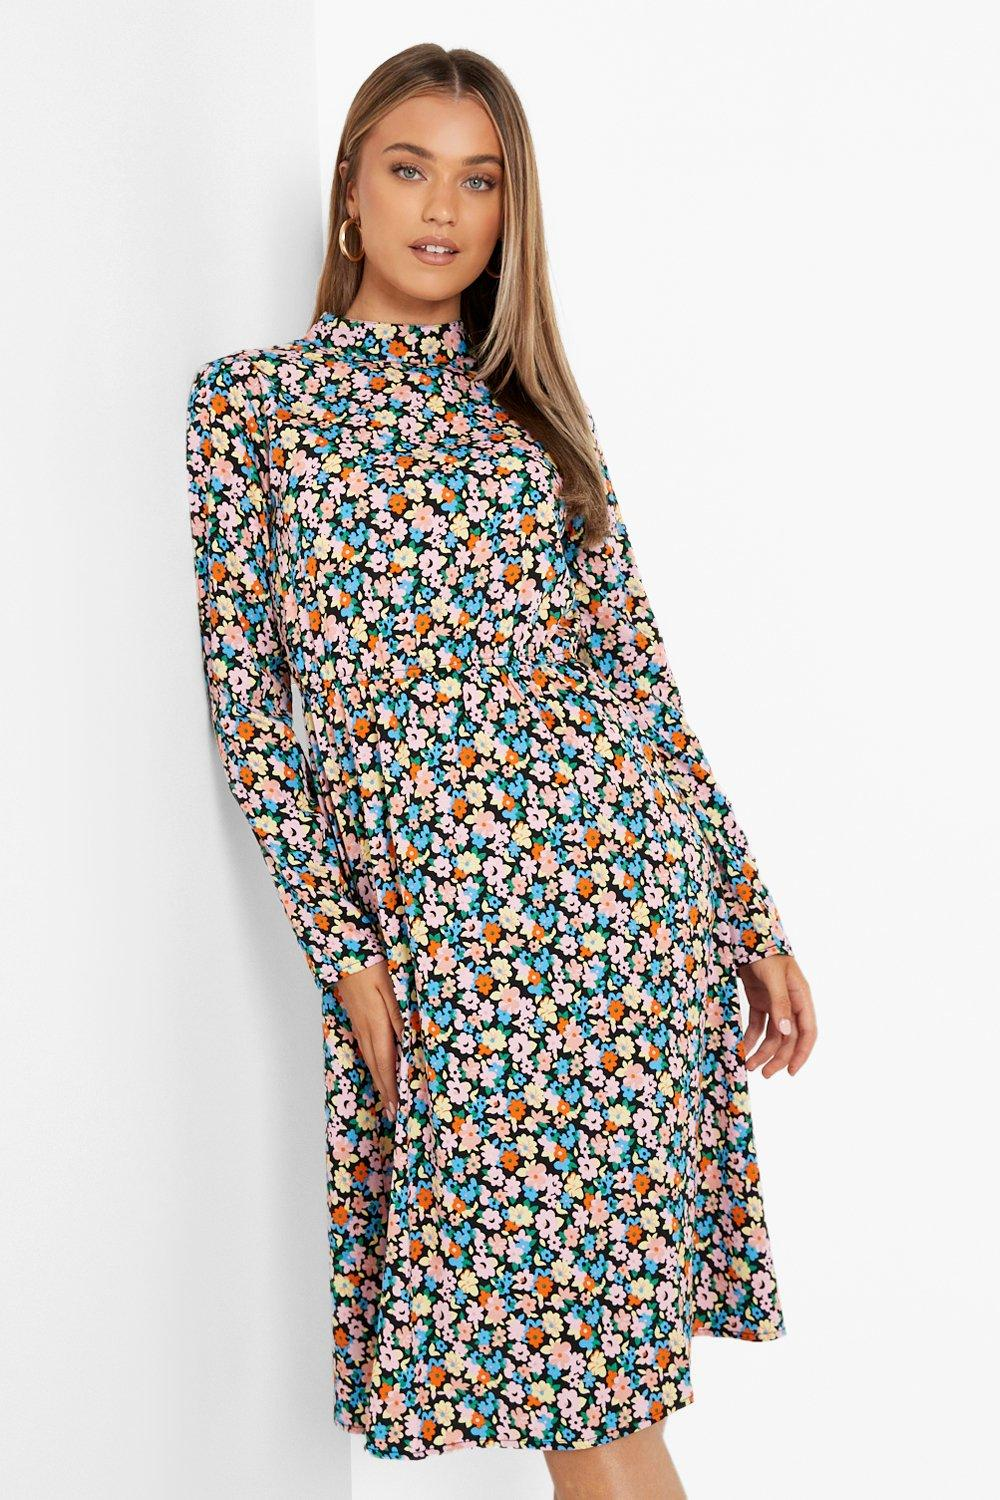 Pin Up Girl Costumes | Pin Up Costumes Womens Ditsy Floral High Neck Long Sleeve Midi Dress - Black - 14 $14.40 AT vintagedancer.com